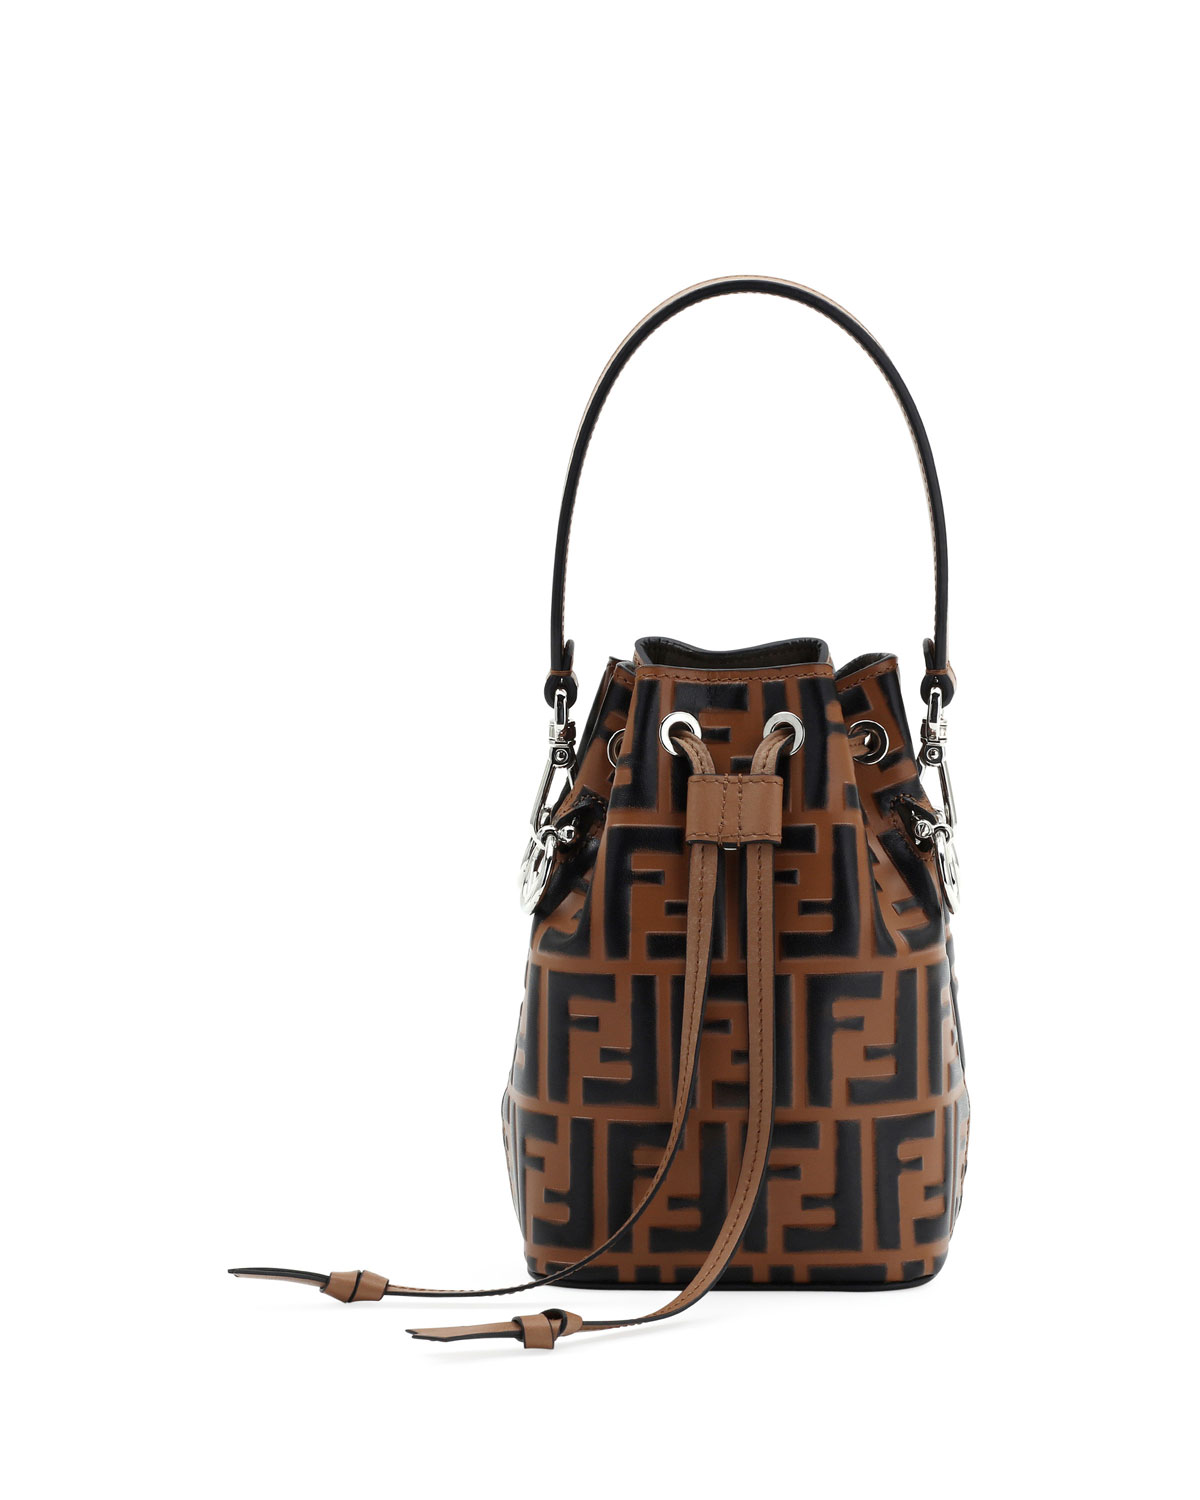 dbf890058c16 Fendi Mon Tresor Small FF Bucket Bag